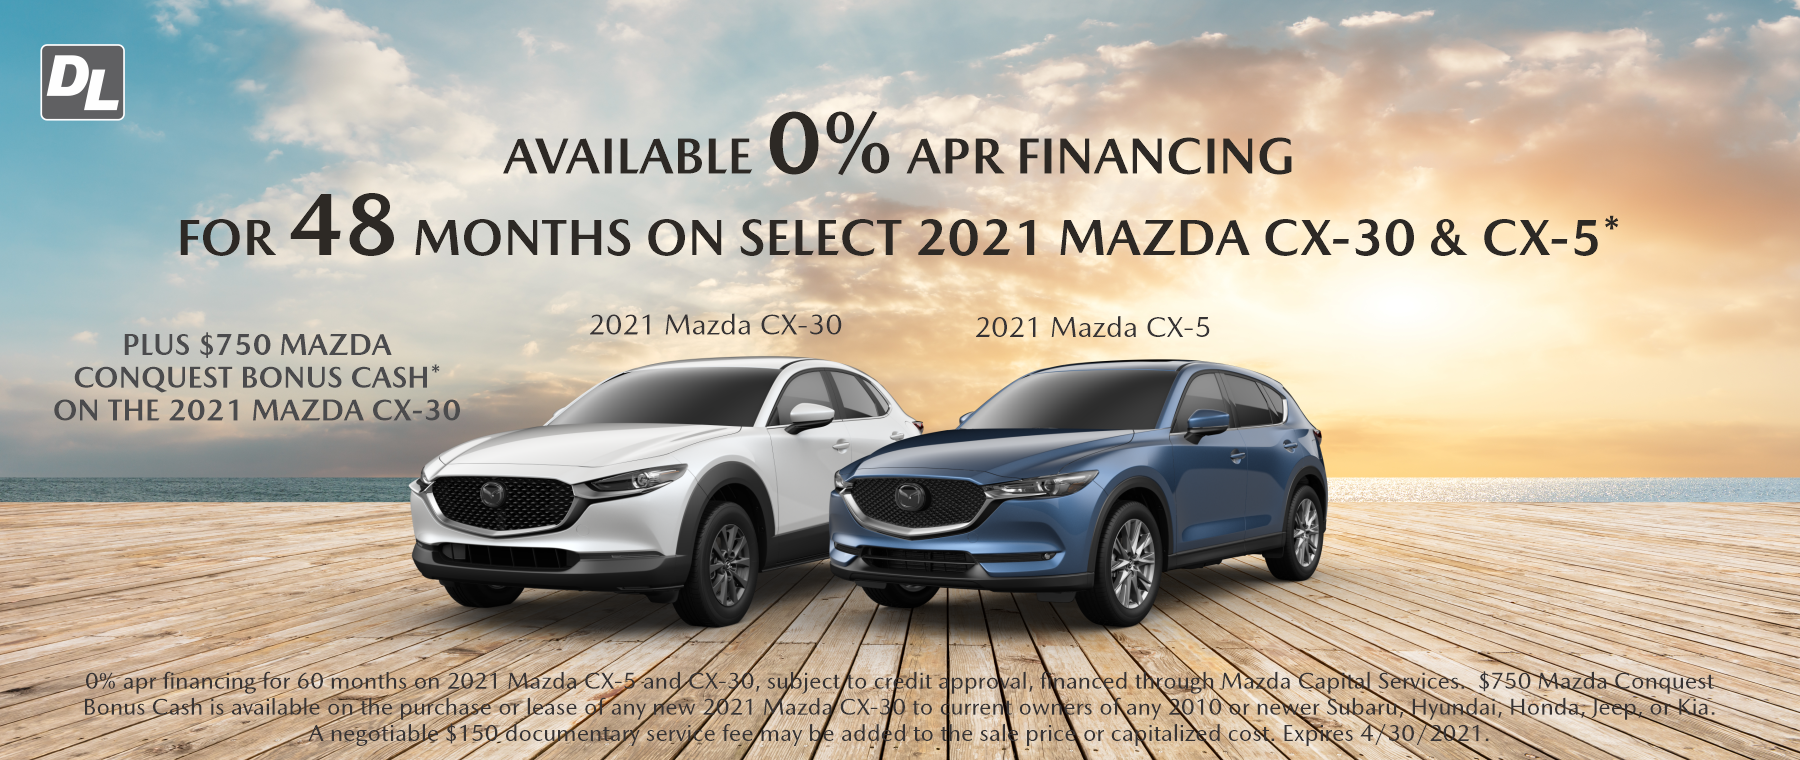 2021AprilBanners-Mazda-0for48